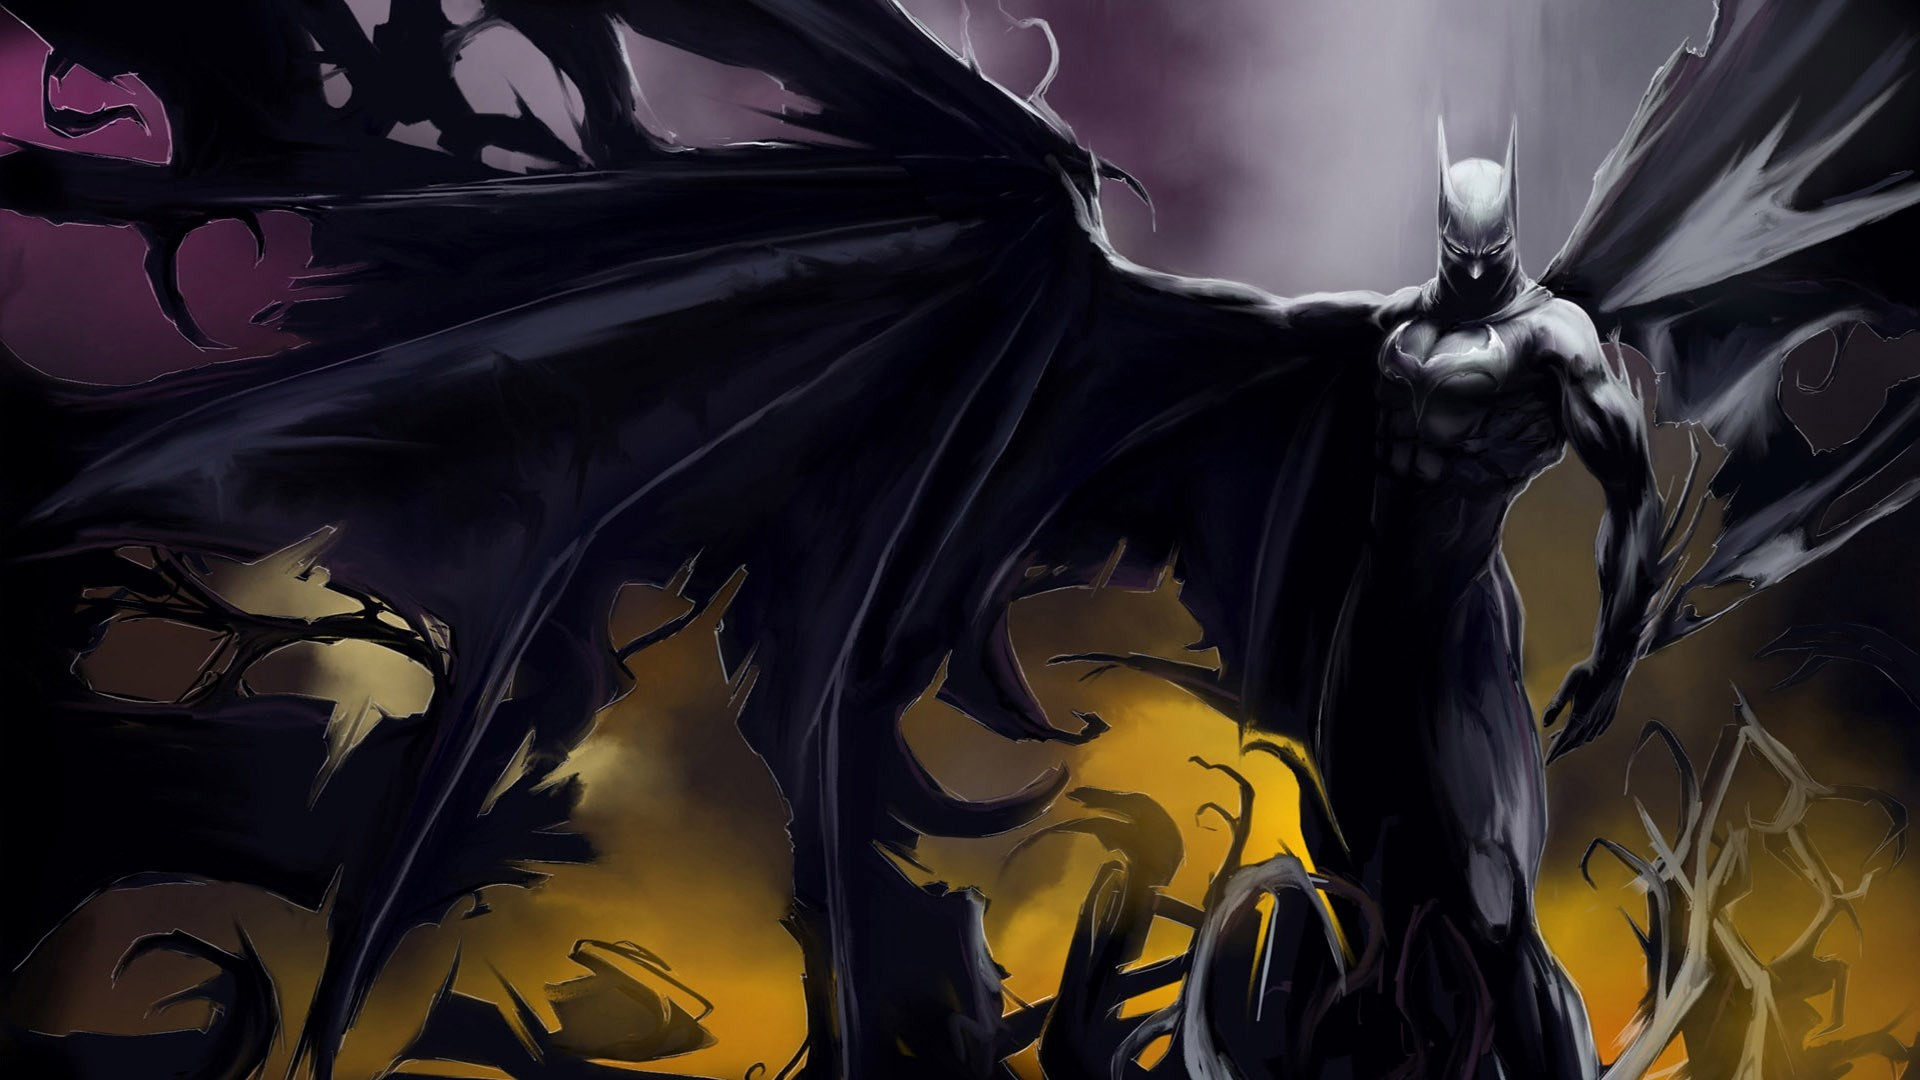 1920x1080 Stoddart Smith - HQ Definition Wallpaper Desktop batman pic -  px